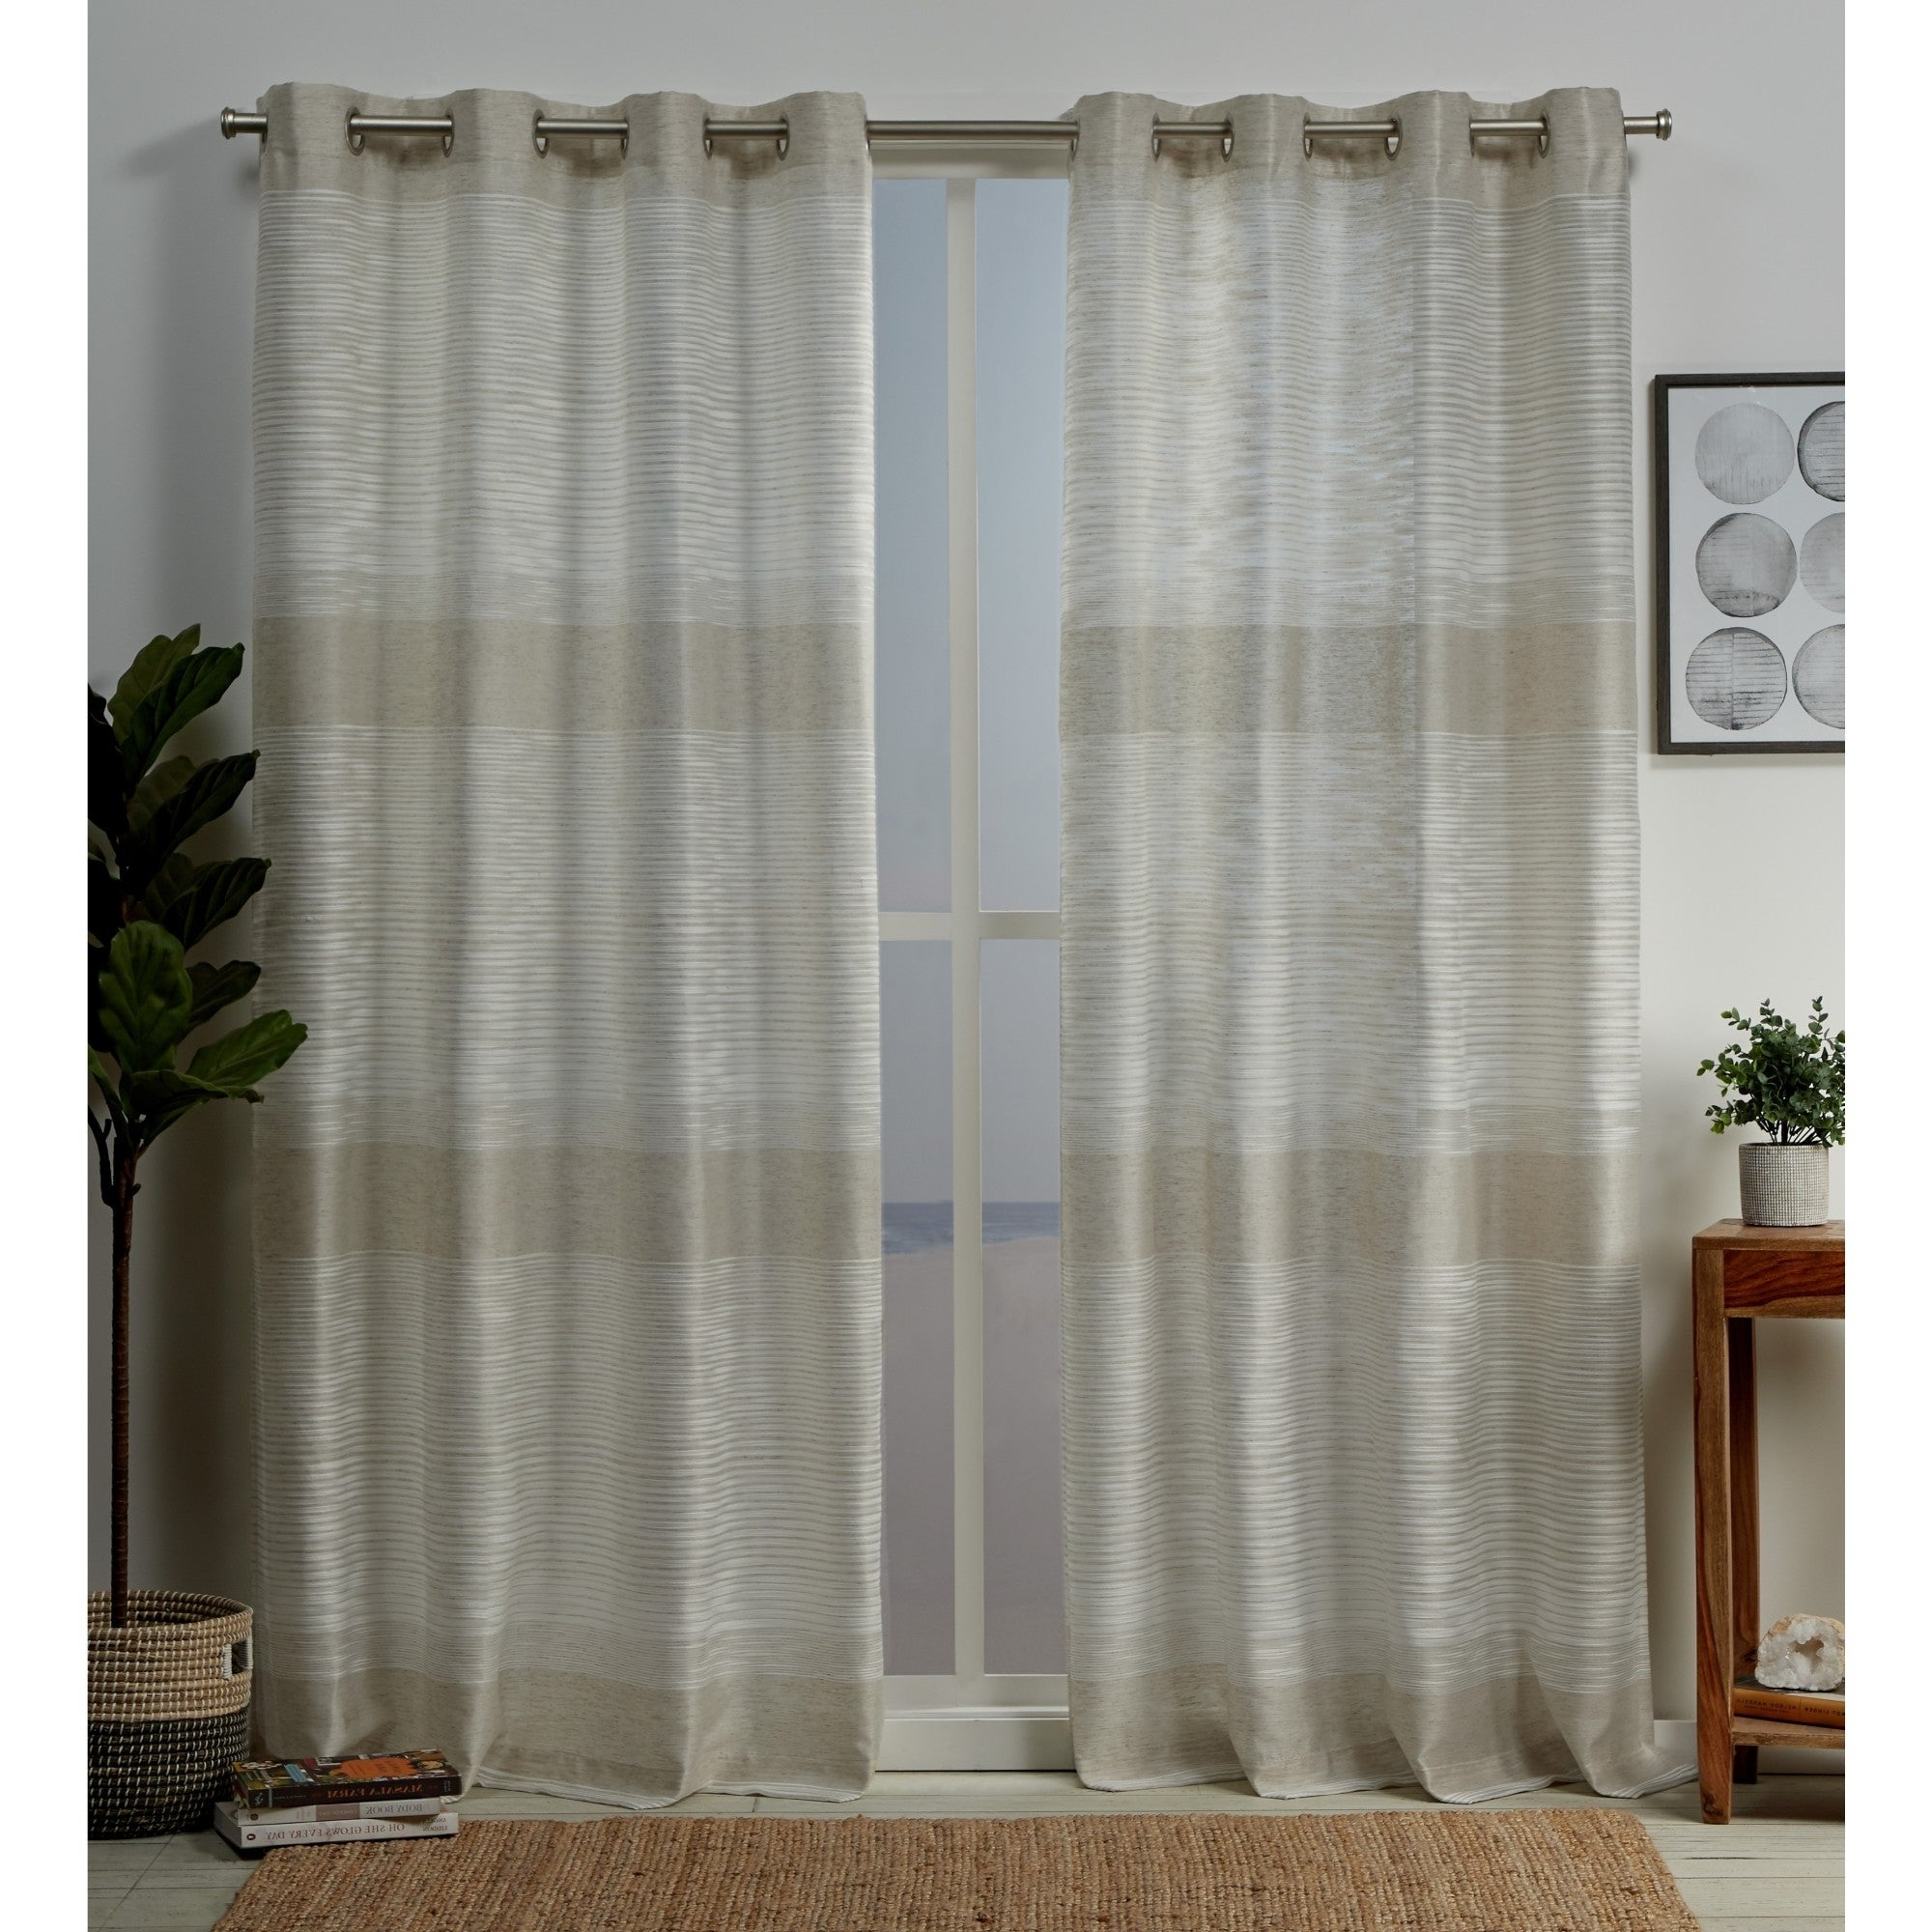 Fashionable Ocean Striped Window Curtain Panel Pairs With Grommet Top Within Copper Grove Panagyurishte Striped Grommet Top Curtain Panel Pair (Gallery 12 of 20)